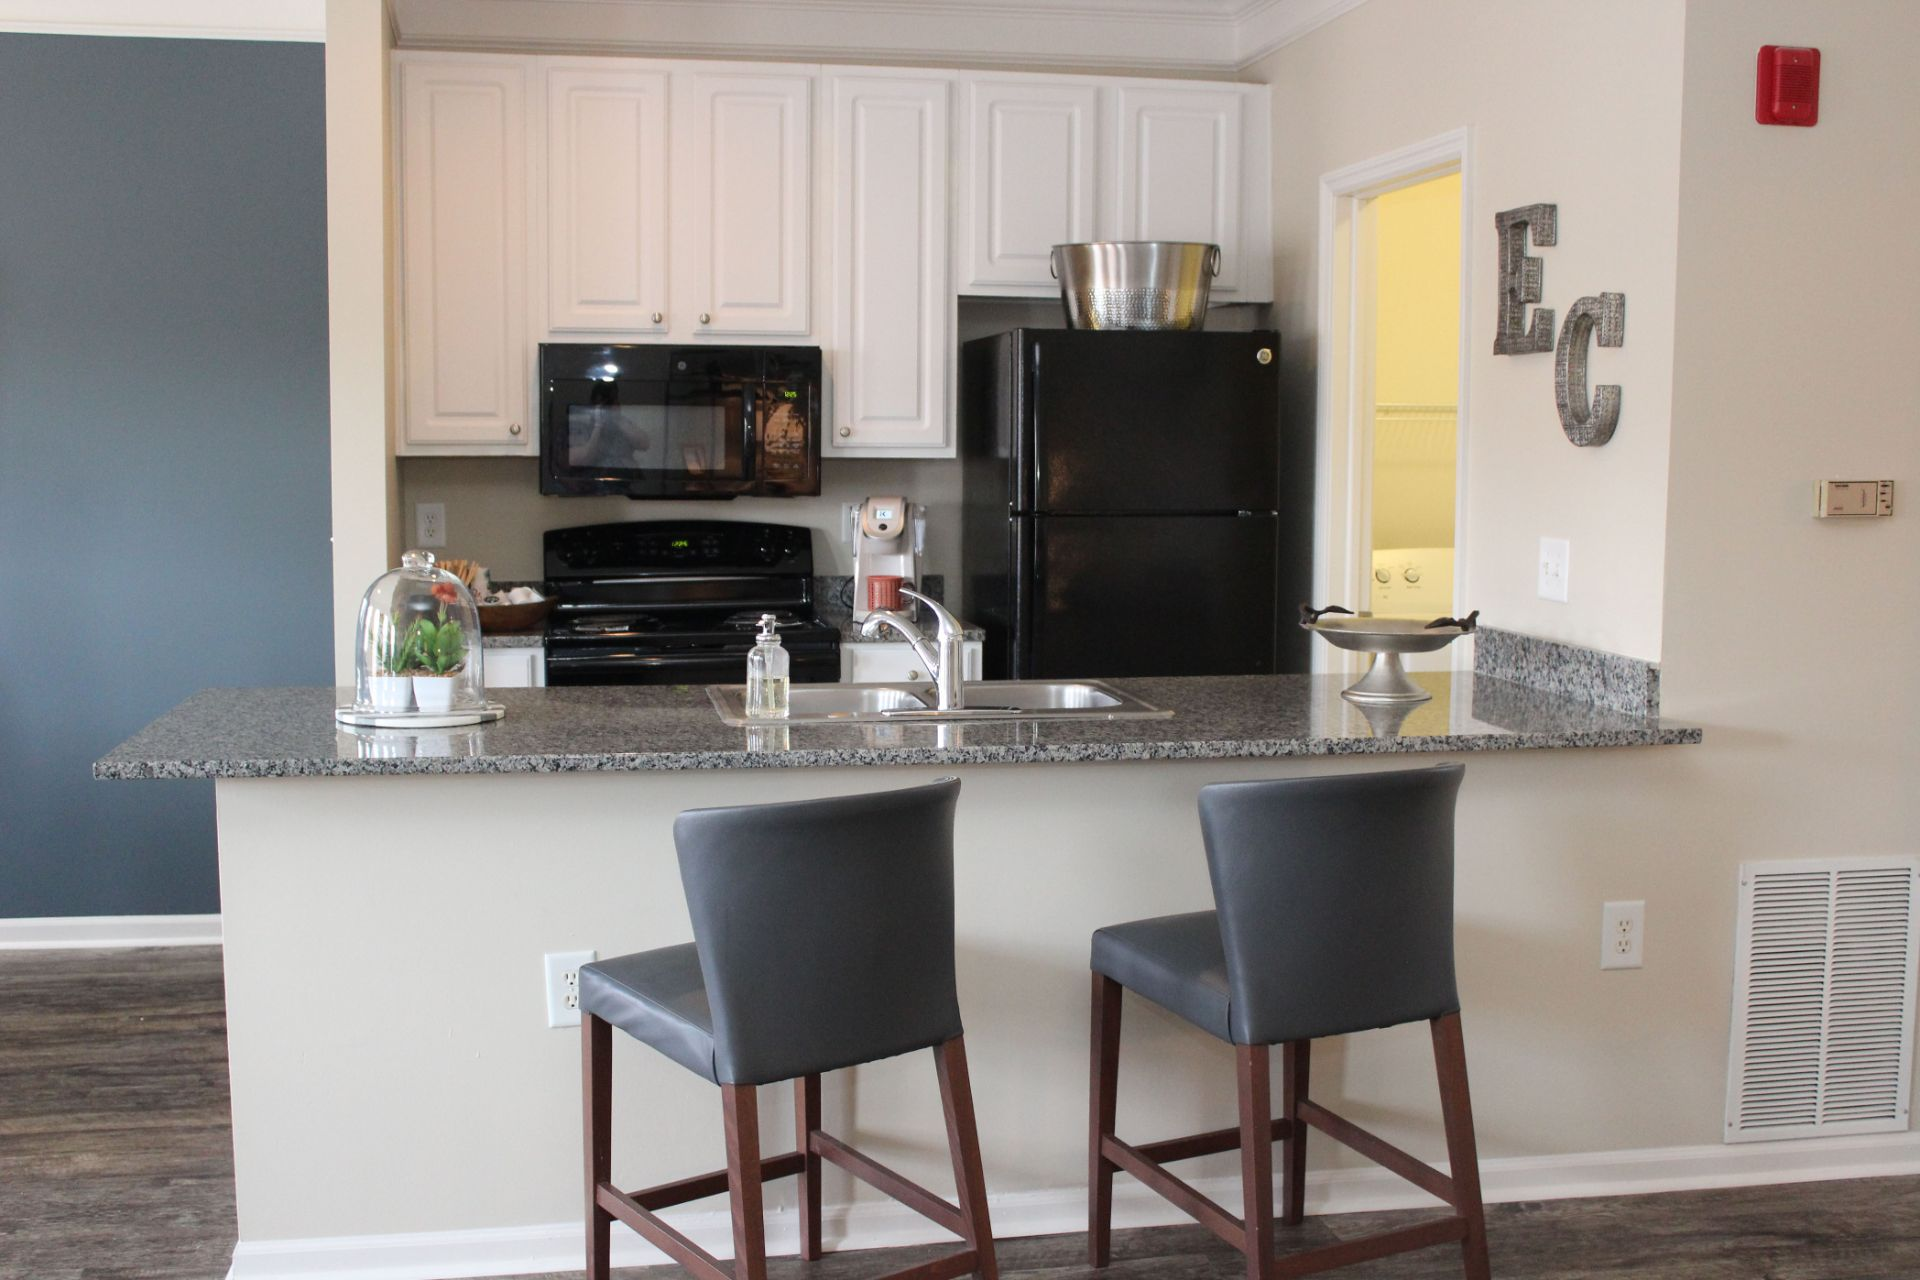 Easton Commons Luxury 1, 2, 3 and 4 Bedroom  Apartments and Townhomes with Modern Kitchens with Breakfast Bar and Washer-Dryer near Easton Town Center in Columbus OH  4011 Easton Way Columbus OH 43219